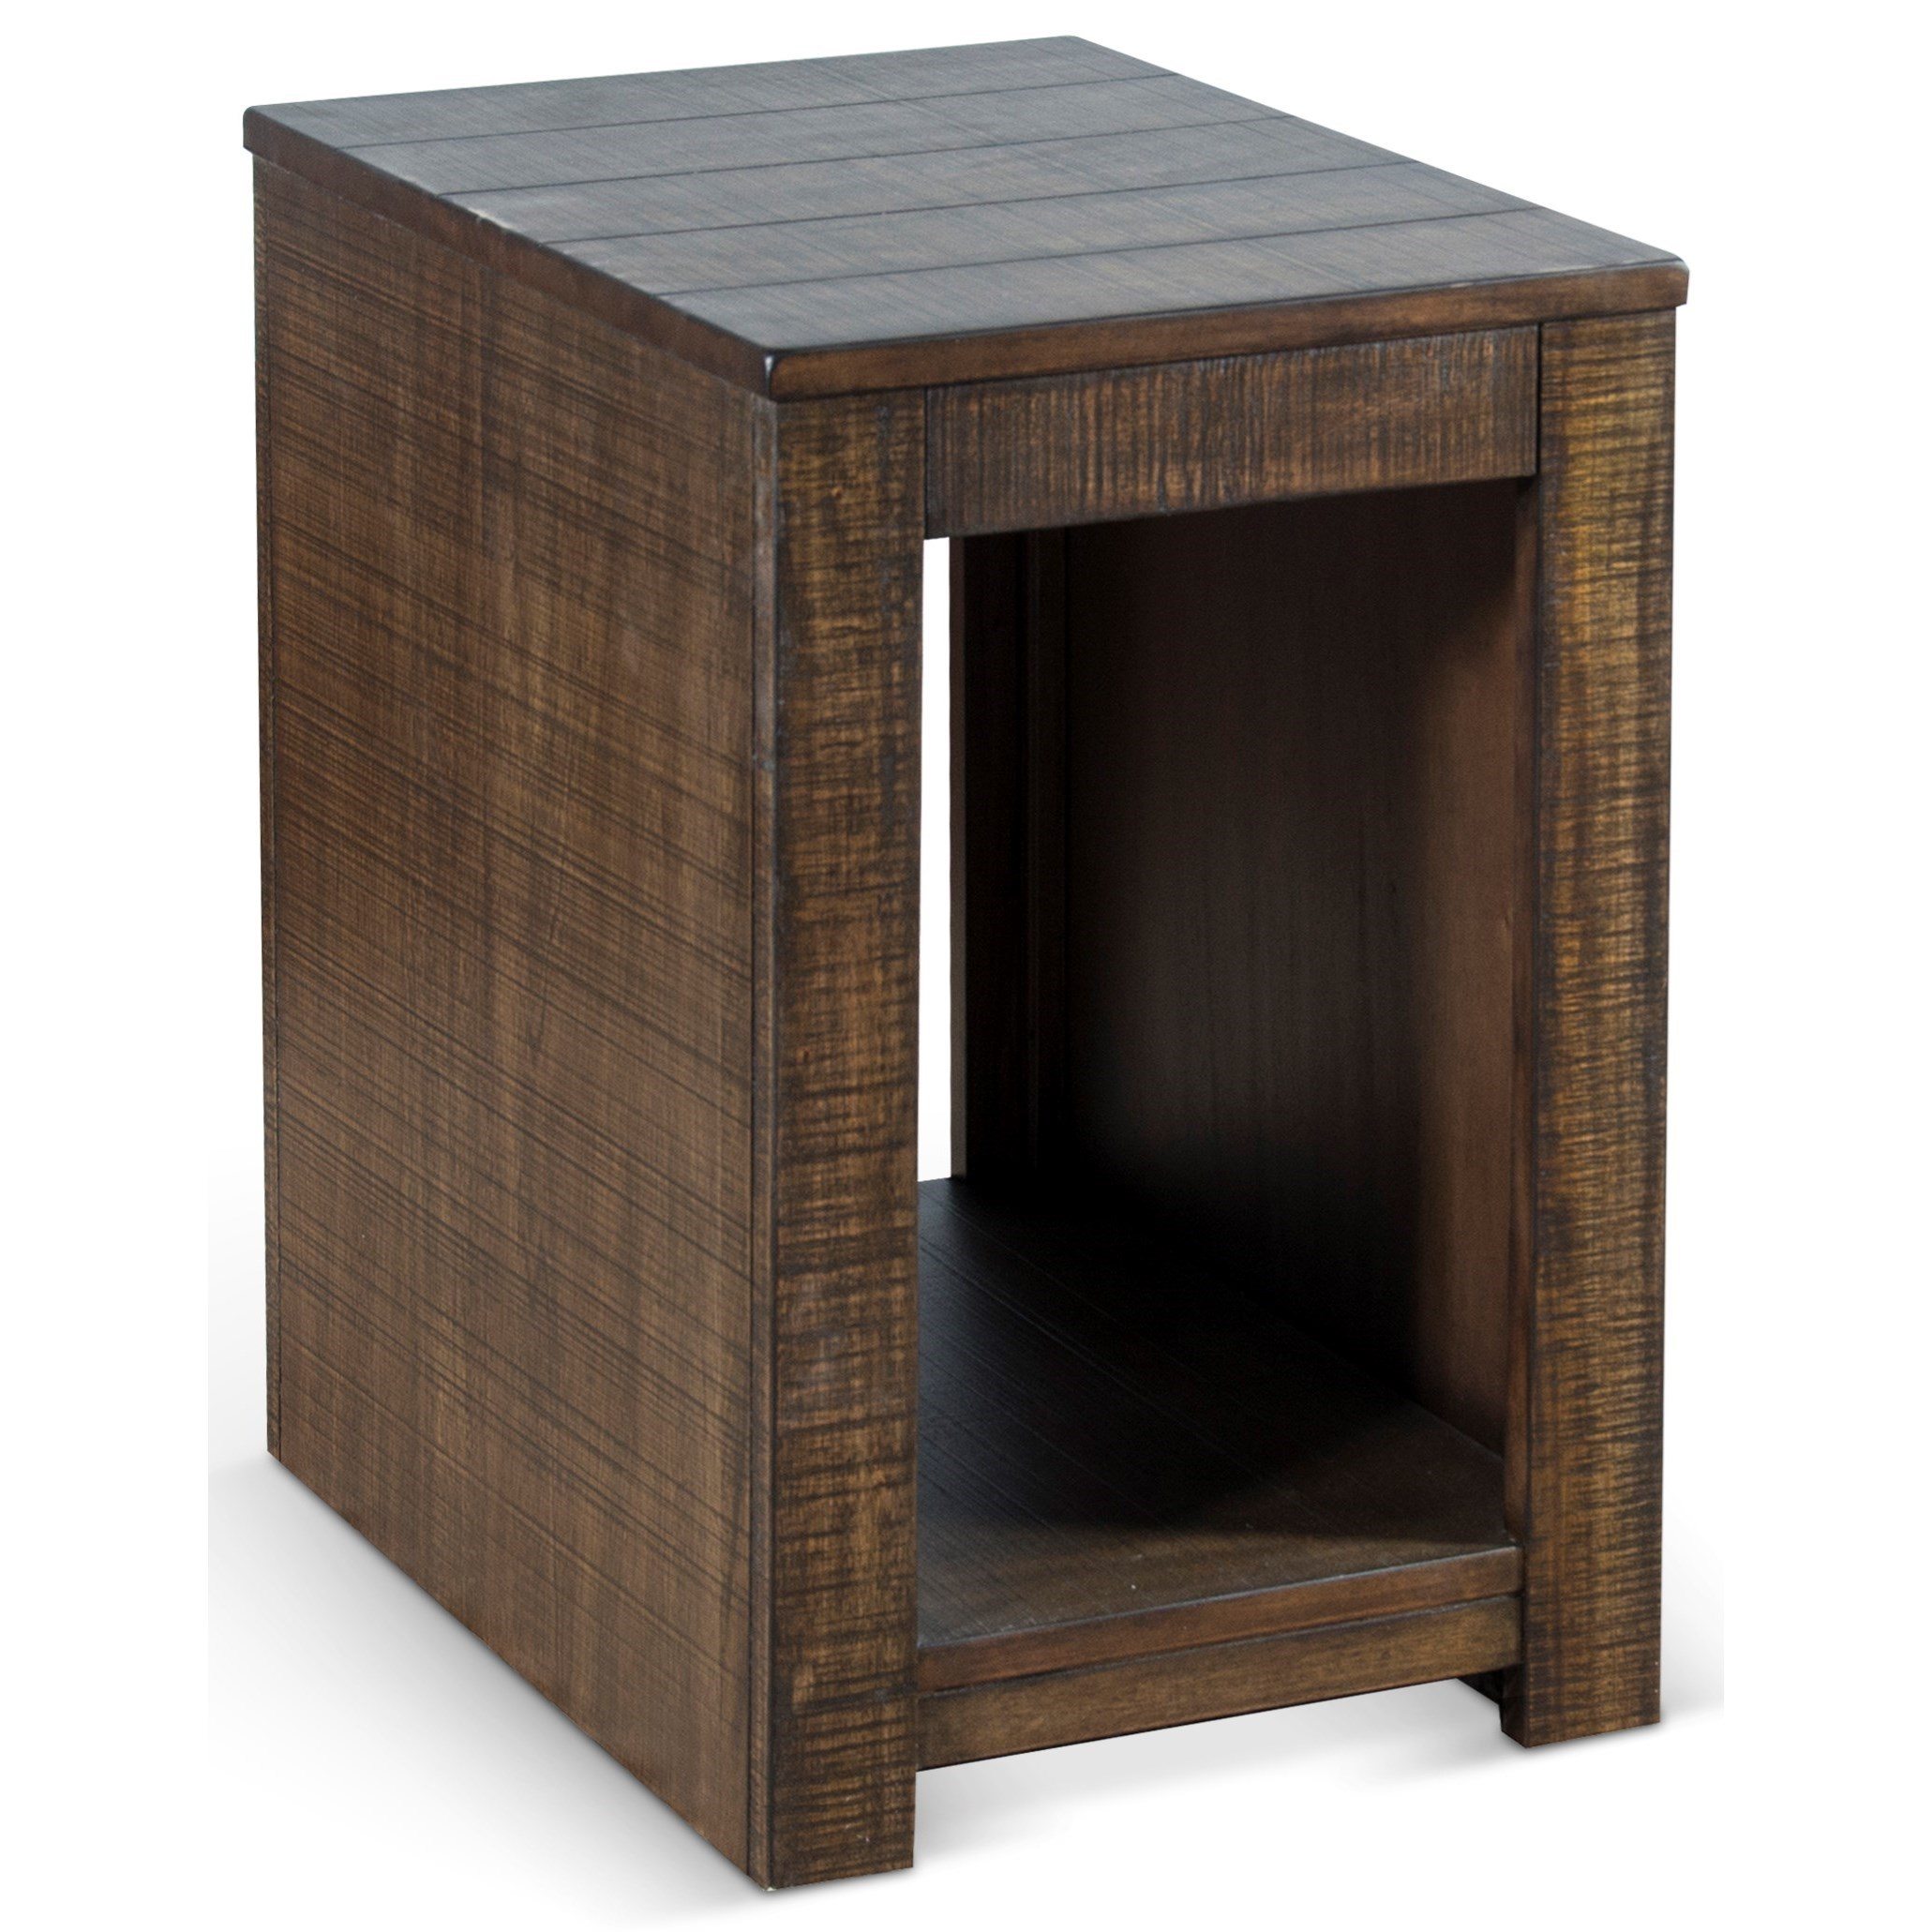 3108 Solid Wood Mahogany Chair Side Table by Sunny Designs at Fashion Furniture